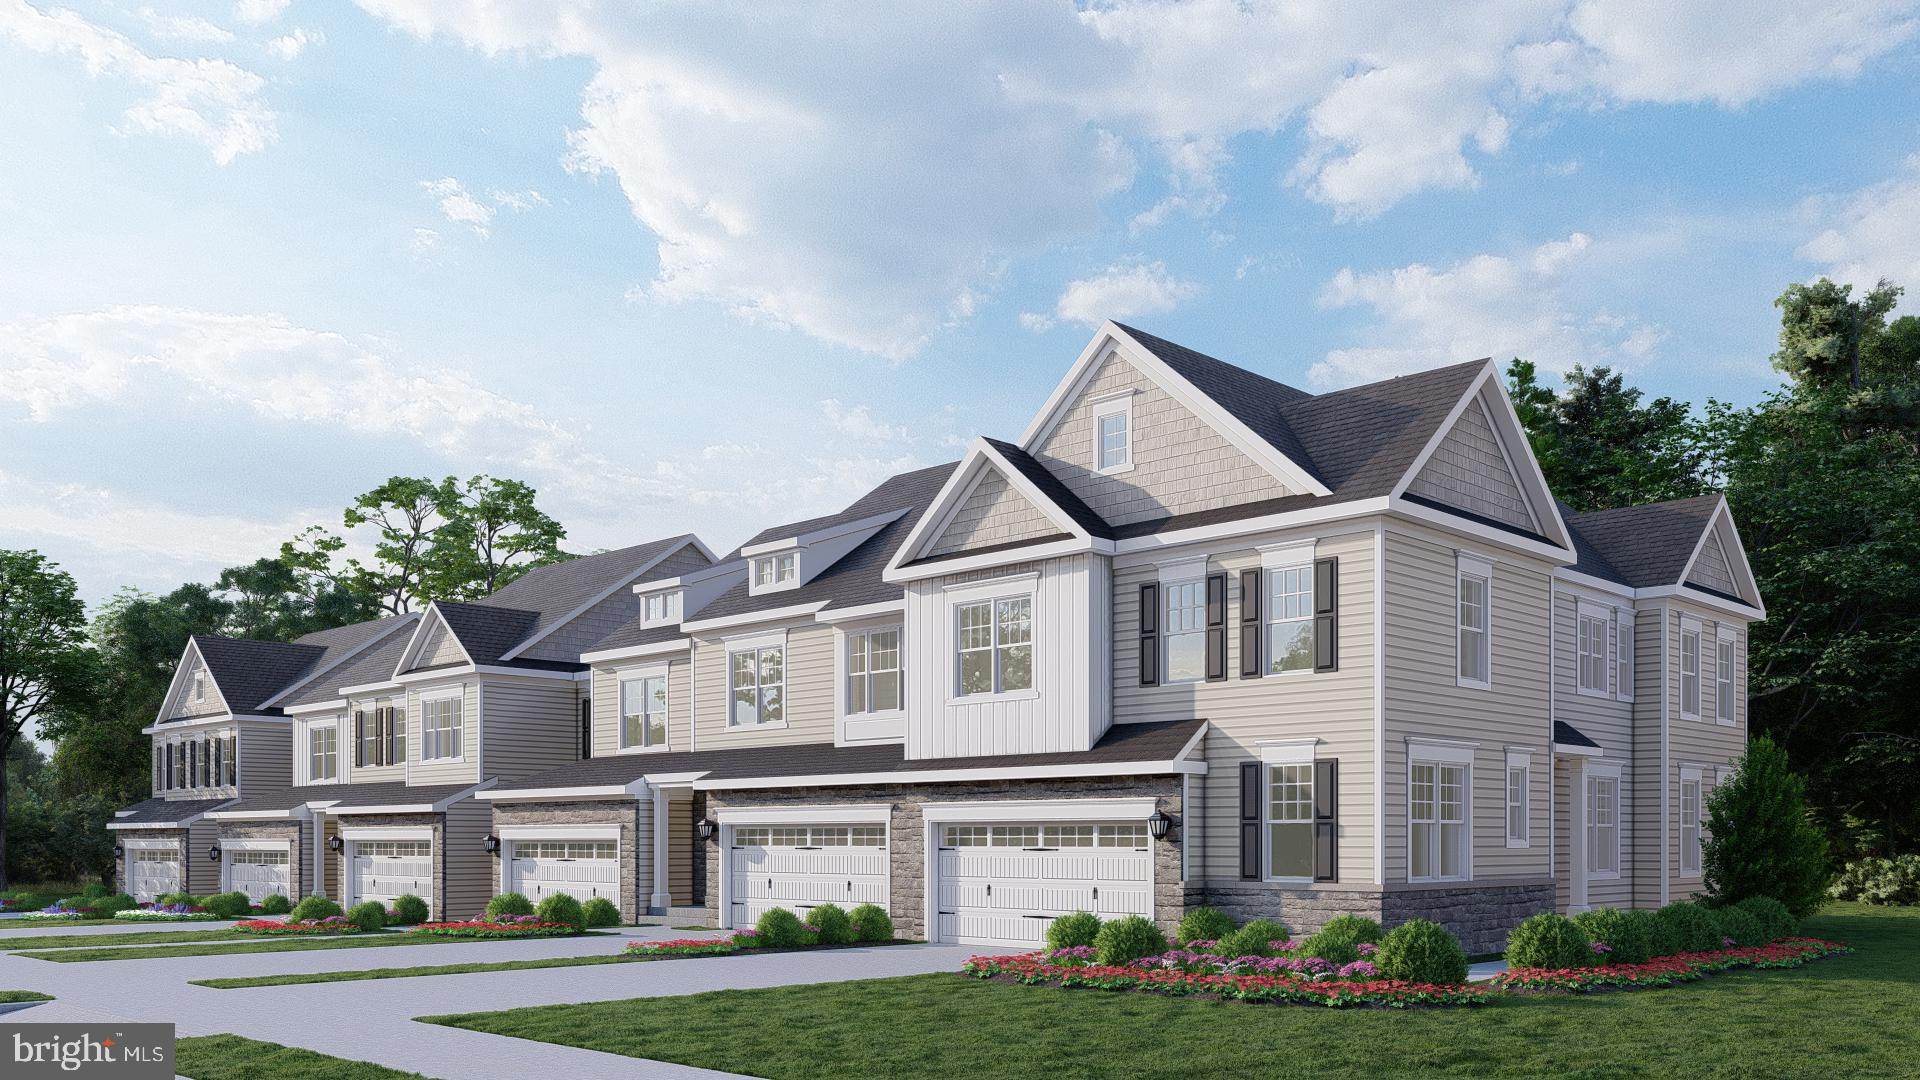 """NOW SELLING  Willistown Point, a beautiful enclave of only 39 luxury carriage homes in Willistown Township, Chester County.  Located  near the most popular boroughs and cities in Southeastern Pennsylvania such as Newtown Square, West Chester, King of Prussia, and Malvern.  This home will be ready in December!  The  """"Charlestown"""" is a stunning, dramatic, open,  end home design with a dramatic two-story foyer and turn staircase design with beautiful detailsm and any upgrades.   This unique community will have beautiful landscaping, natural and paved walking trails, and a pocket park to meet with your new neighbors. It resides in the award-winning Great Valley School District which currently ranks in the Top 20 Best School Districts in Pennsylvania.  Our team has collectively developed 4 brand-new home designs by combining the most attractive features and sought-after options.   Our standard finishes include gourmet kitchens, 9' tall 1st and 2nd-floor walls, 5""""hardwood flooring in foyer, kitchen, breakfast room, study, and powder room (per plan), and 2-car carriage-style garage doors  The gourmet kitchens include 42""""tall Century kitchen cabinets with crown molding, large kitchen islands with built-in cabinets, and stainless steel GE appliances. A 1-, 2- and a 10-year warranty is included in every quality-built Rouse Chamberlin home.  We have just opened.  Roads are in and our 1st homeowners will be arriving in December of this year!  SALES CENTER is open 11-5PM, Thursday thru Monday off site,  we are not on site.  We do have models available, call to schedule your appointment today.  Visit the Rouse Chamberlin  website for additional details."""